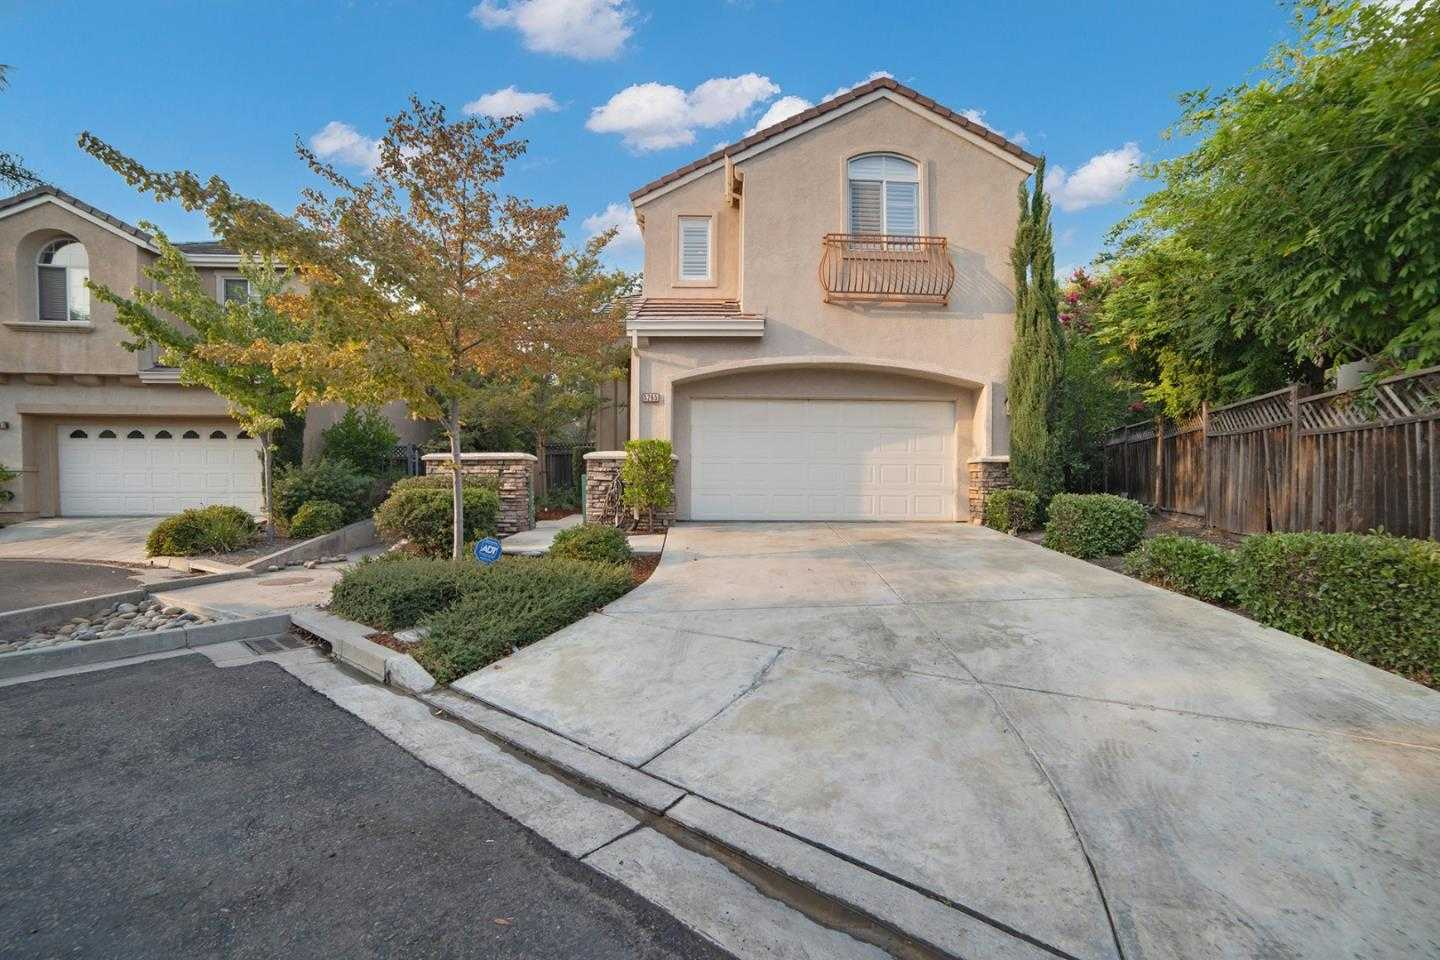 $1,499,800 - 4Br/3Ba -  for Sale in San Jose